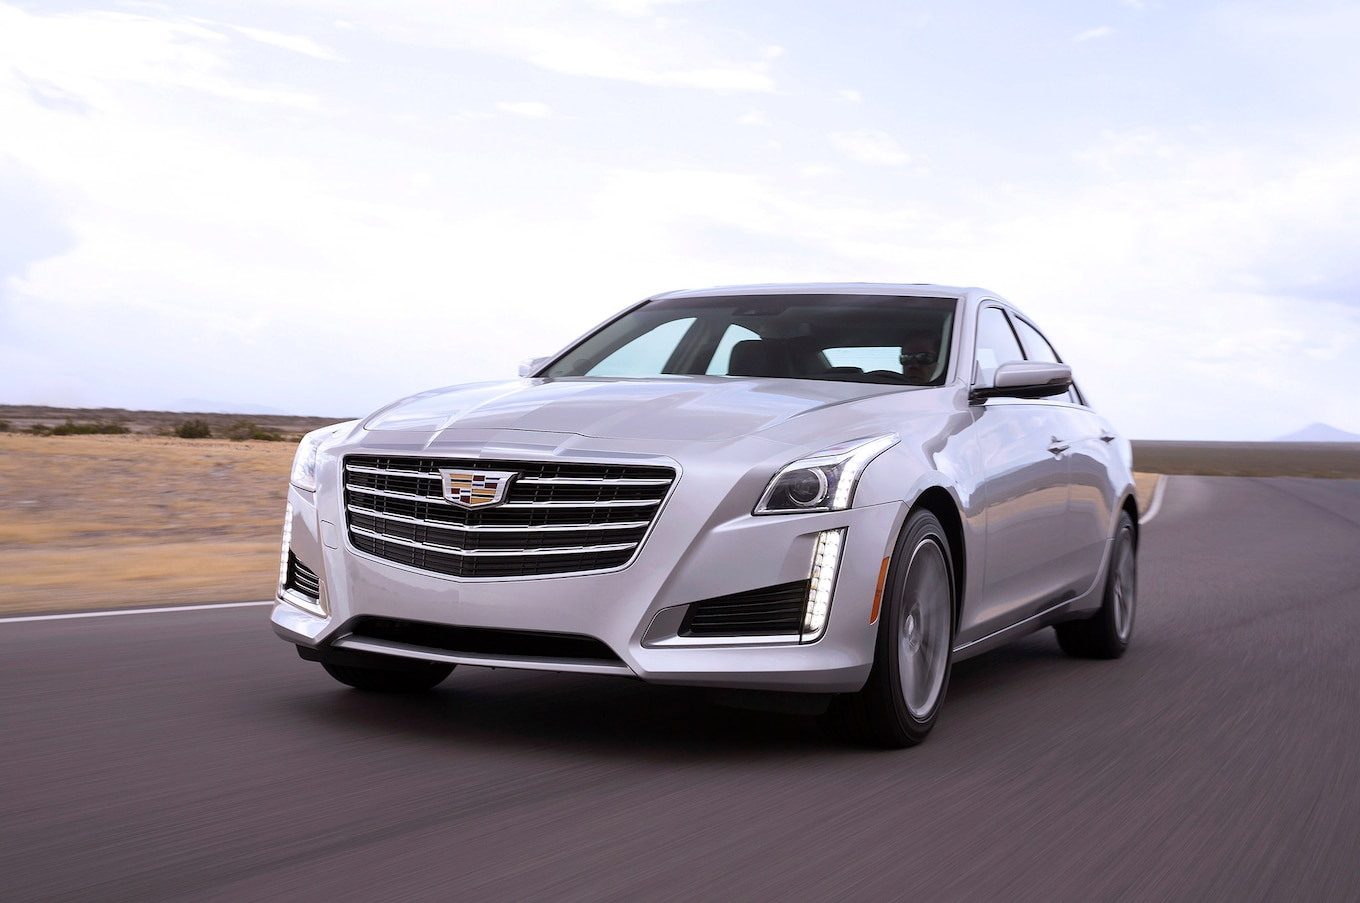 2017 cadillac cts reviews research cts prices u0026 specs motortrendcadillac cts 05 xm radio box [ 392:261 x 1360 Pixel ]